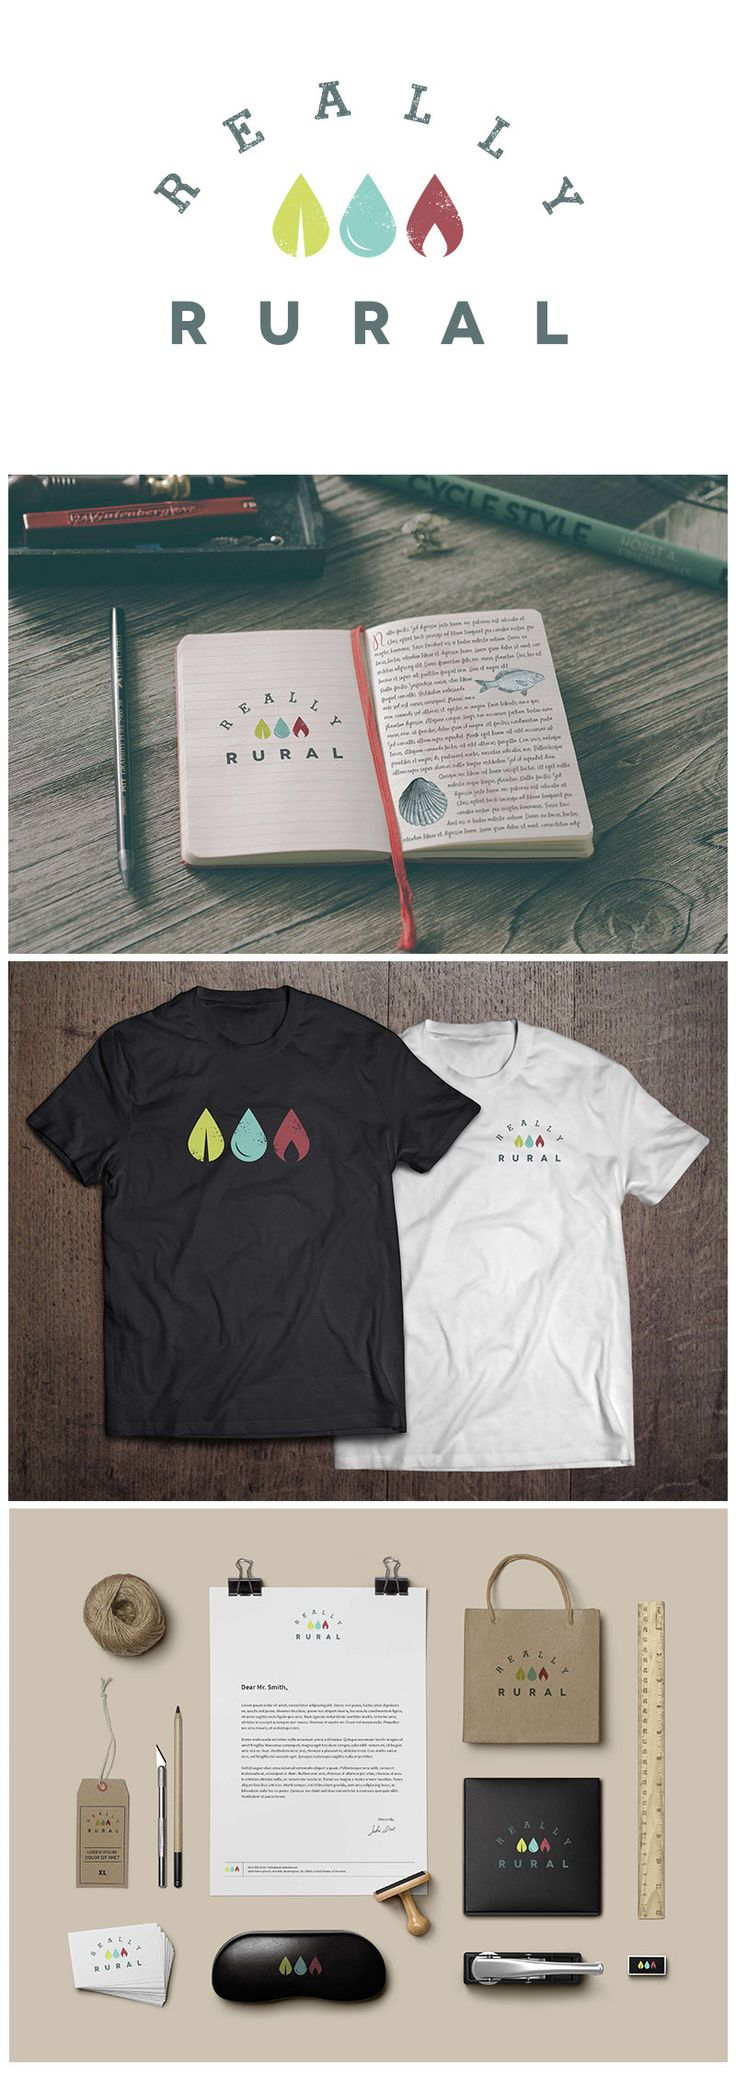 #Brand development for Really Rural by Orphans Press